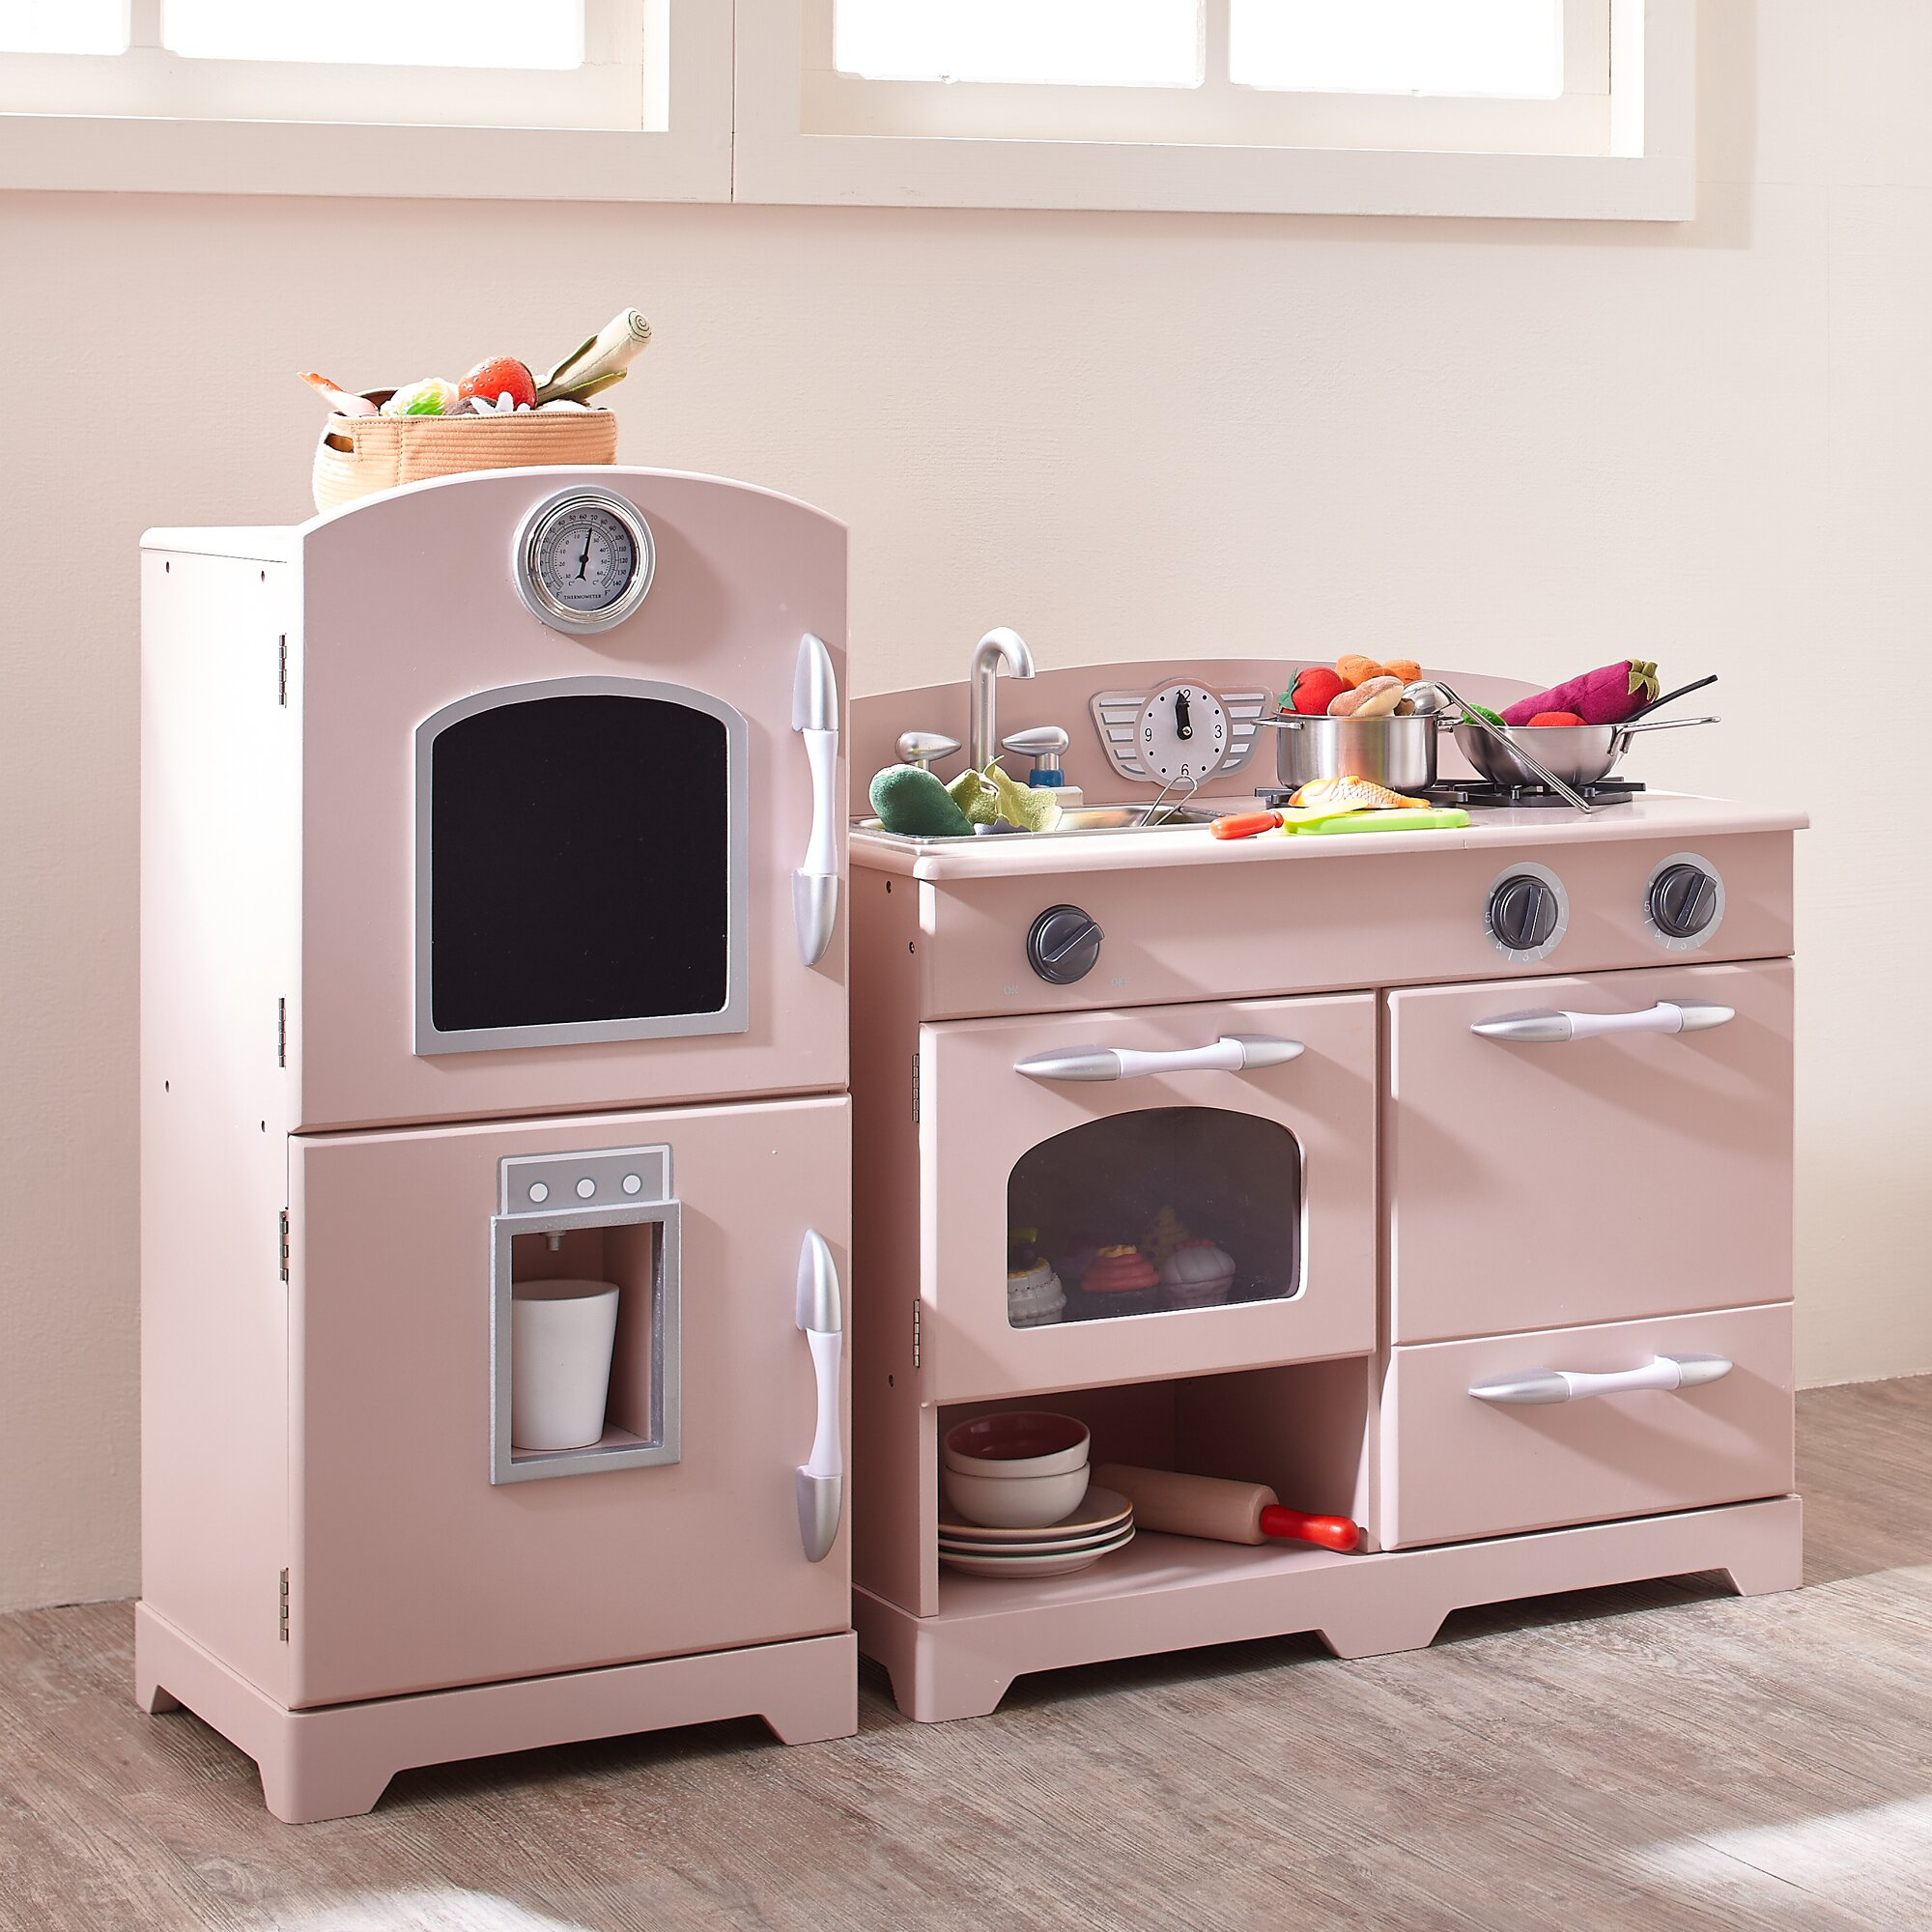 2 piece wooden play kitchen set wayfair for Kitchen kitchen set